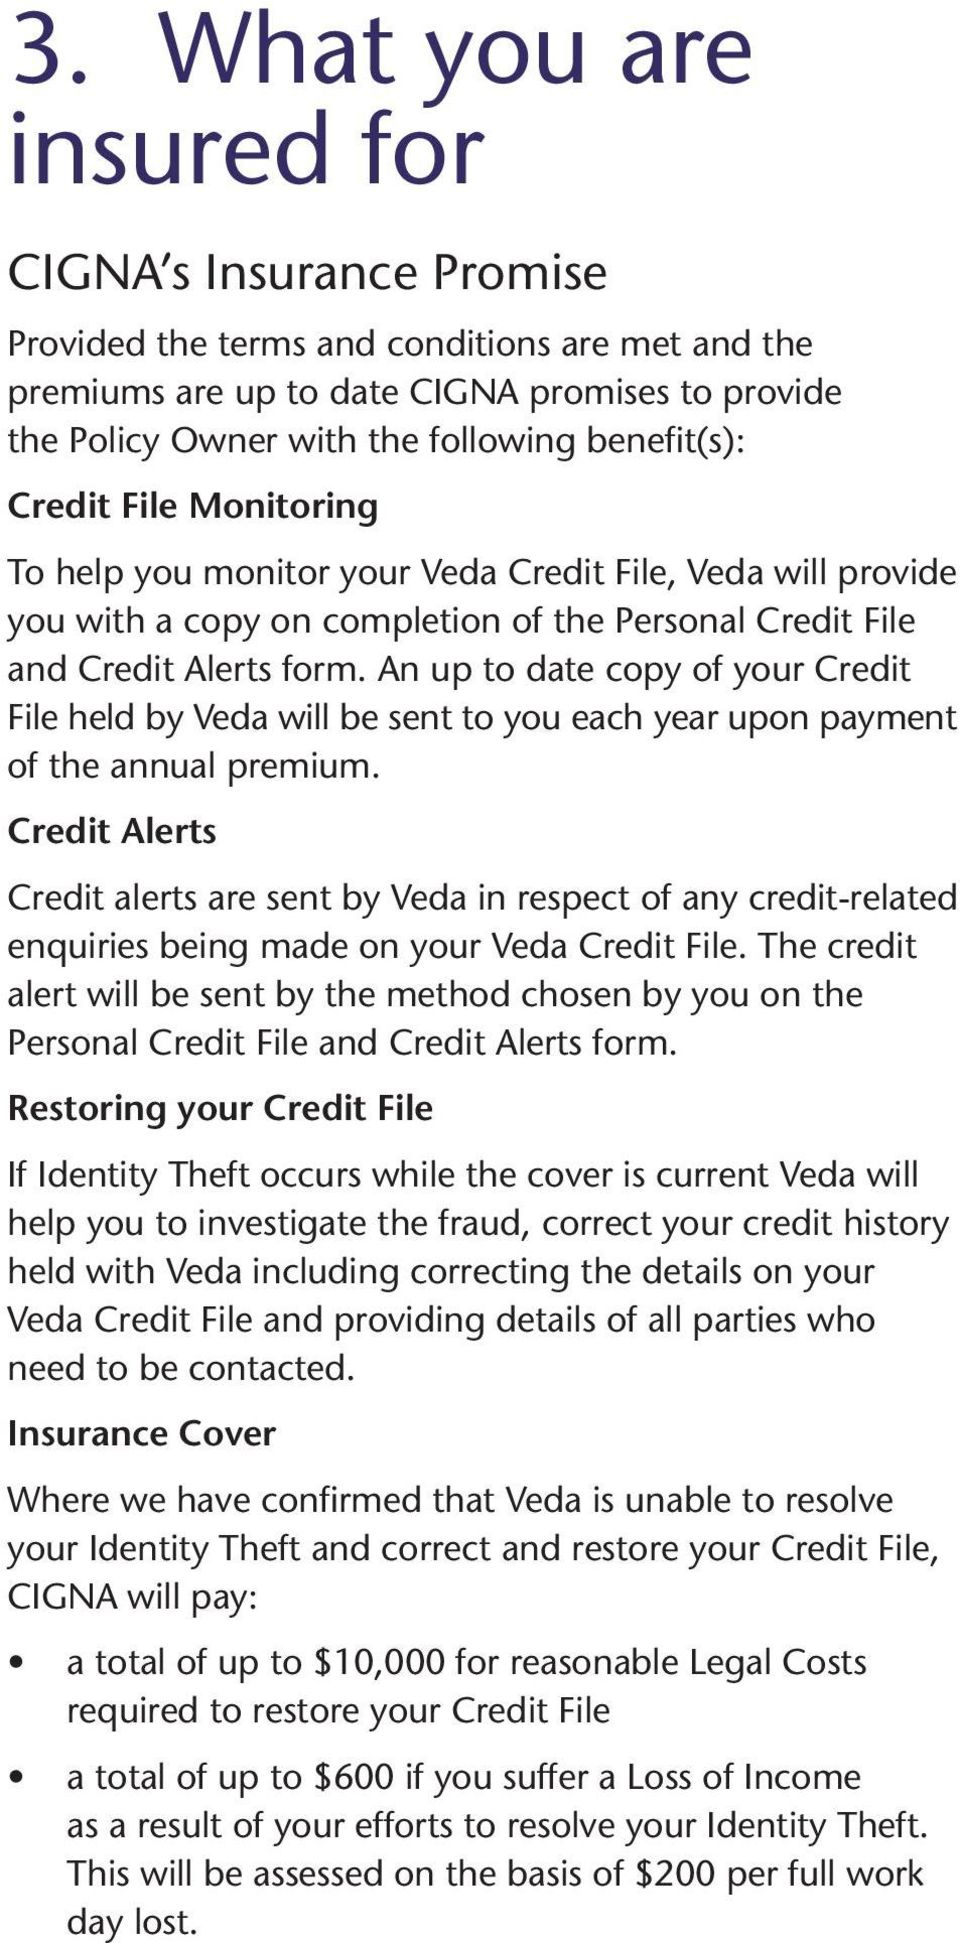 An up to date copy of your Credit File held by Veda will be sent to you each year upon payment of the annual premium.